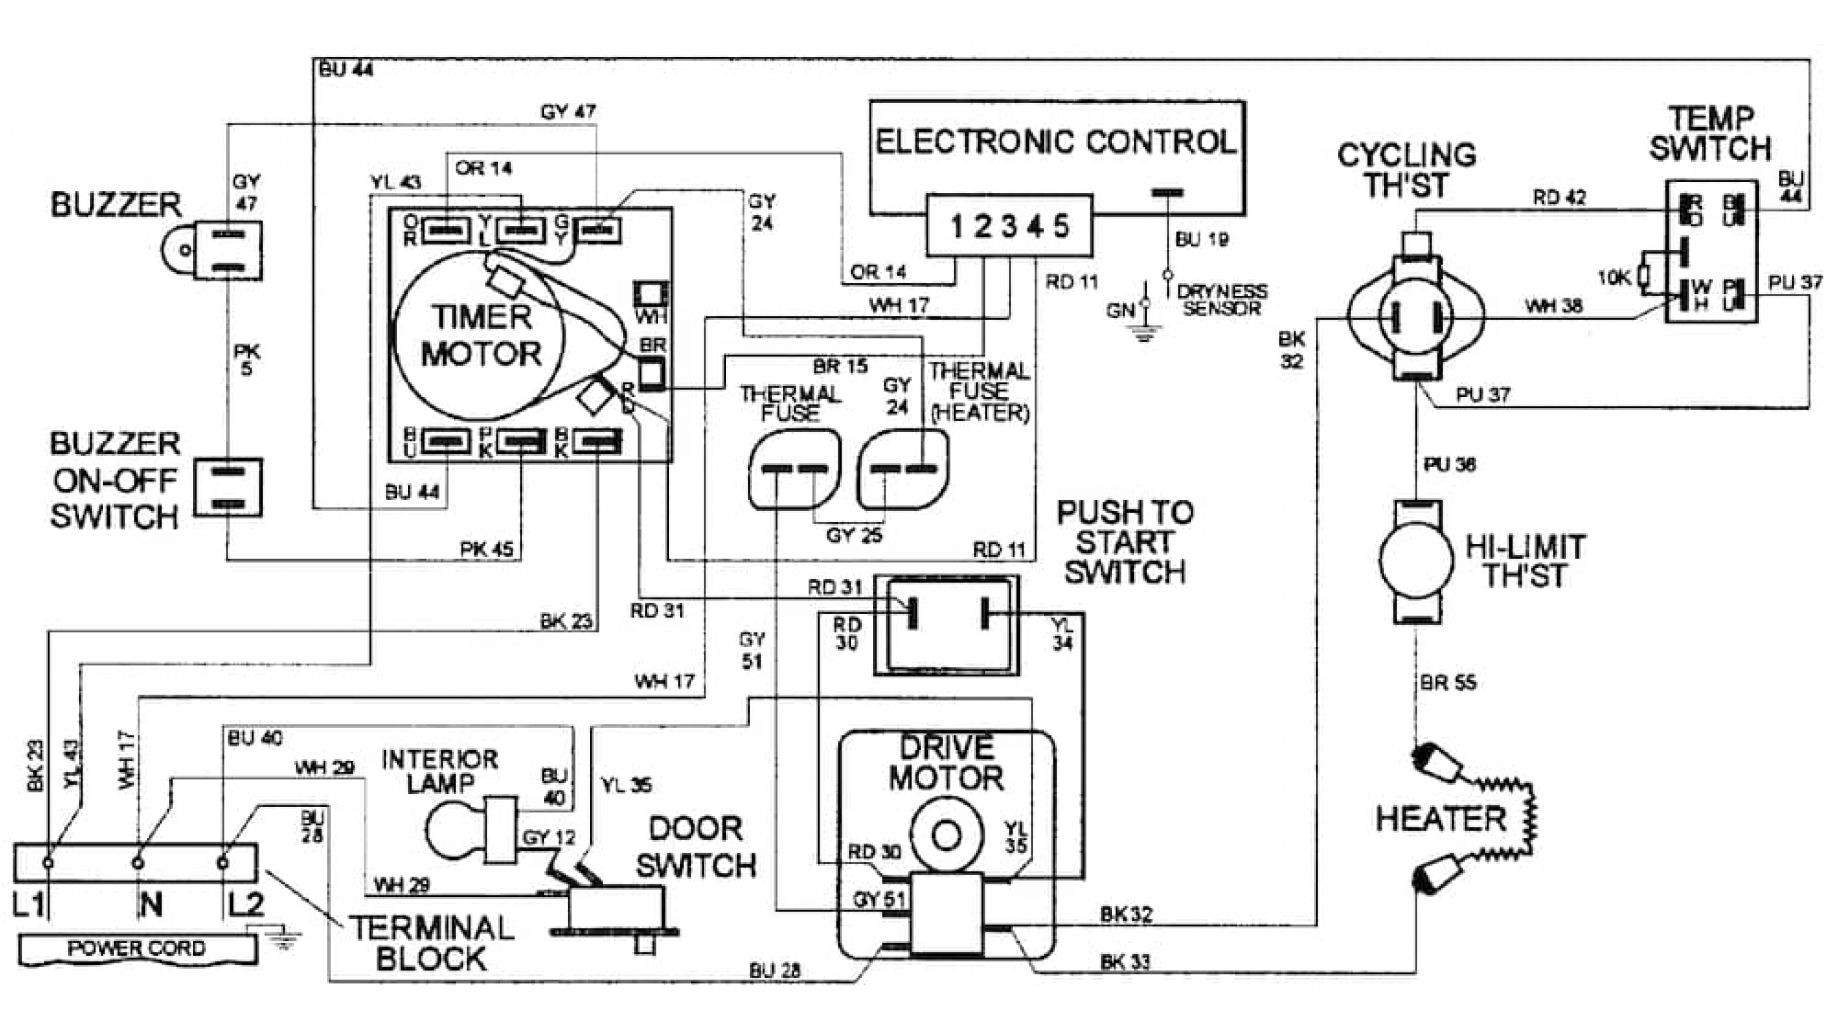 wiring diagram for electrolux dryer heating element. Black Bedroom Furniture Sets. Home Design Ideas